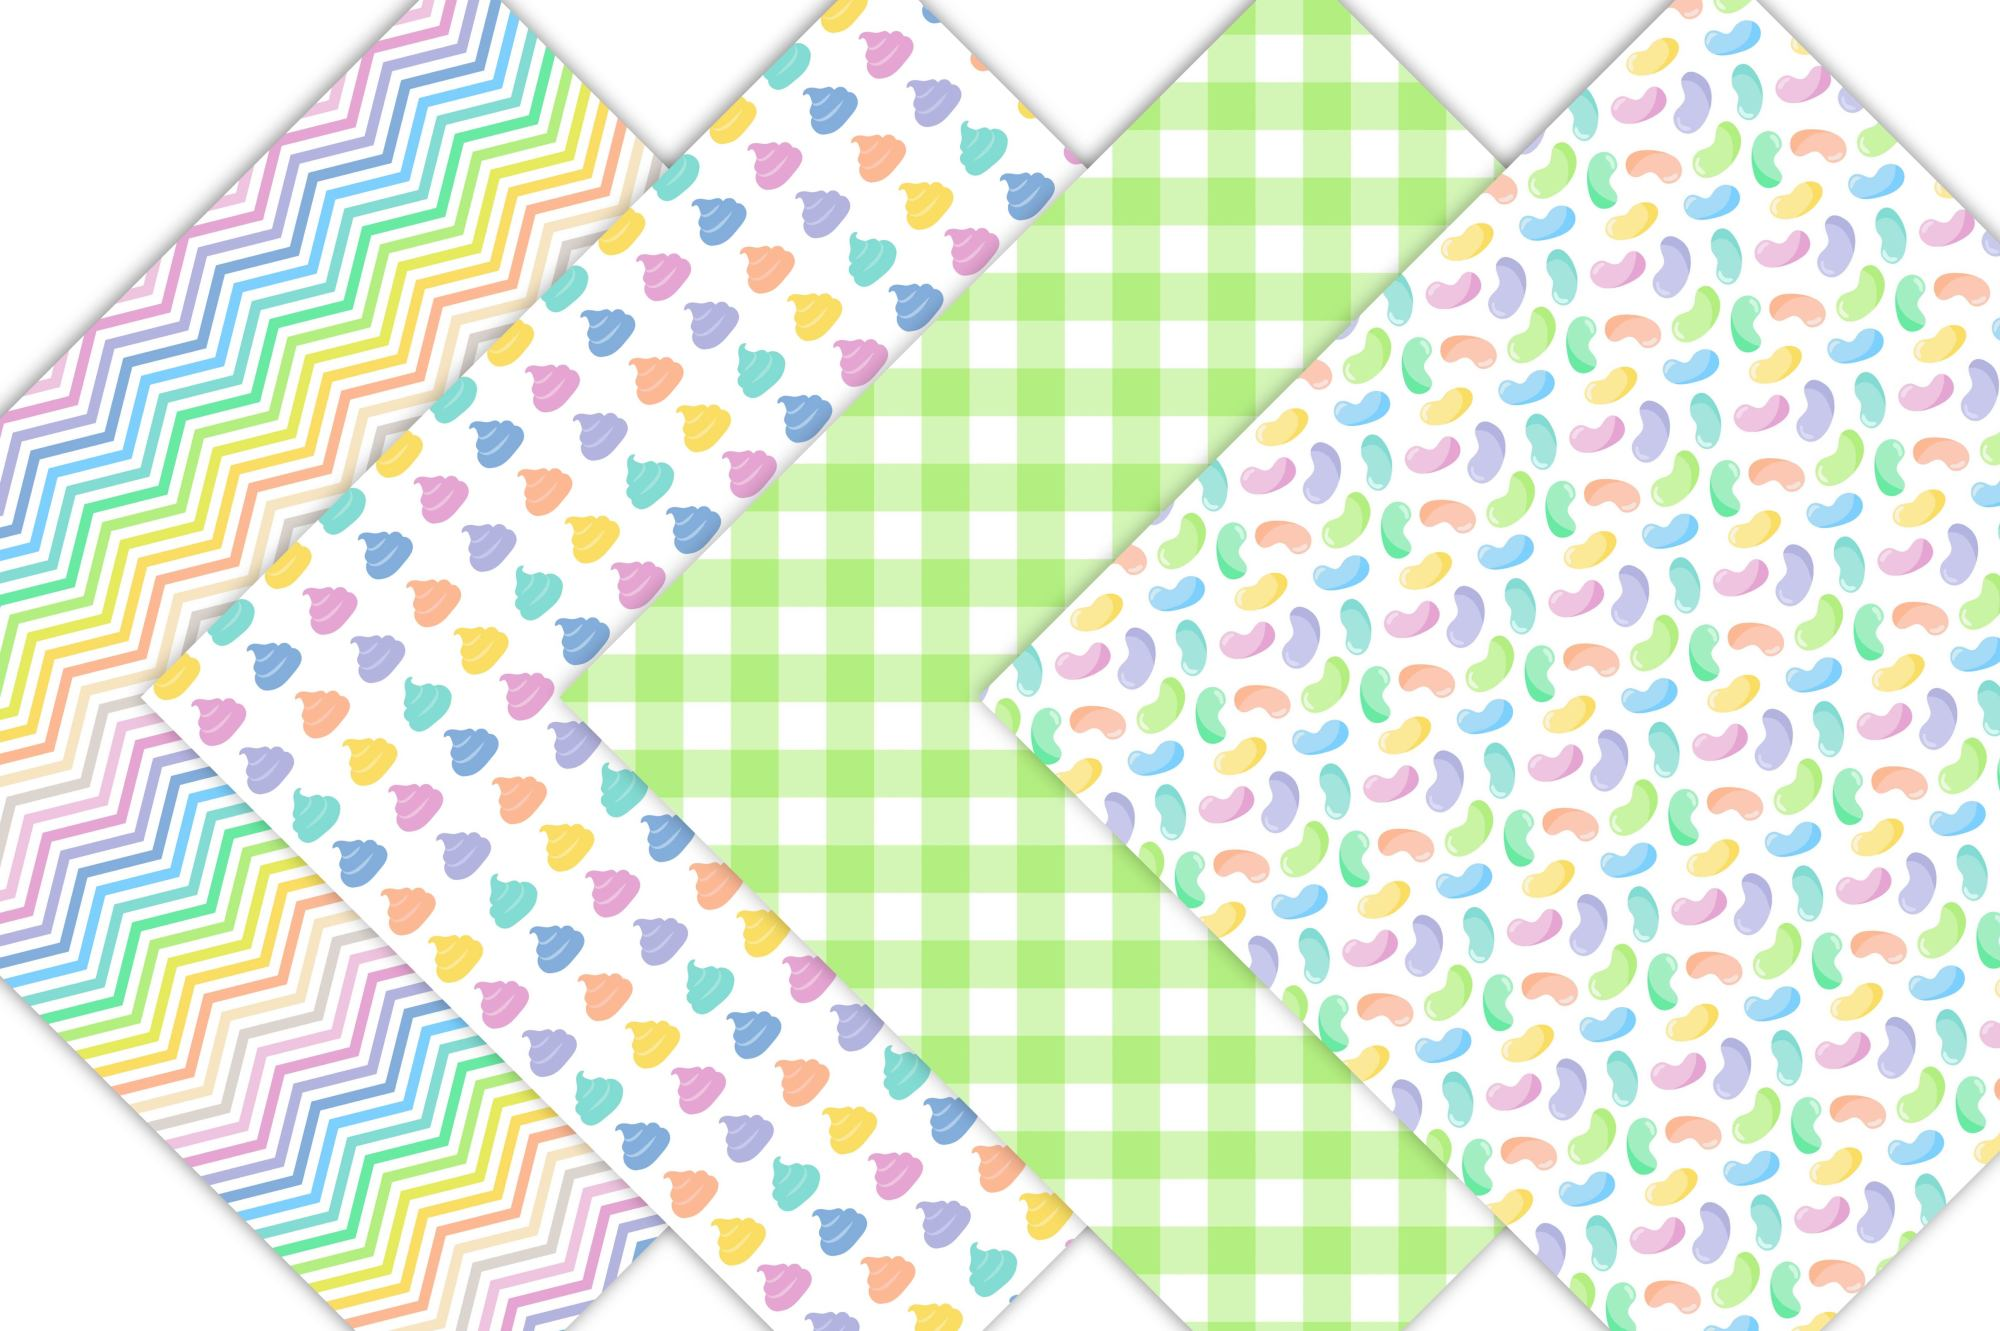 Candy Digital Paper Patterns example image 4